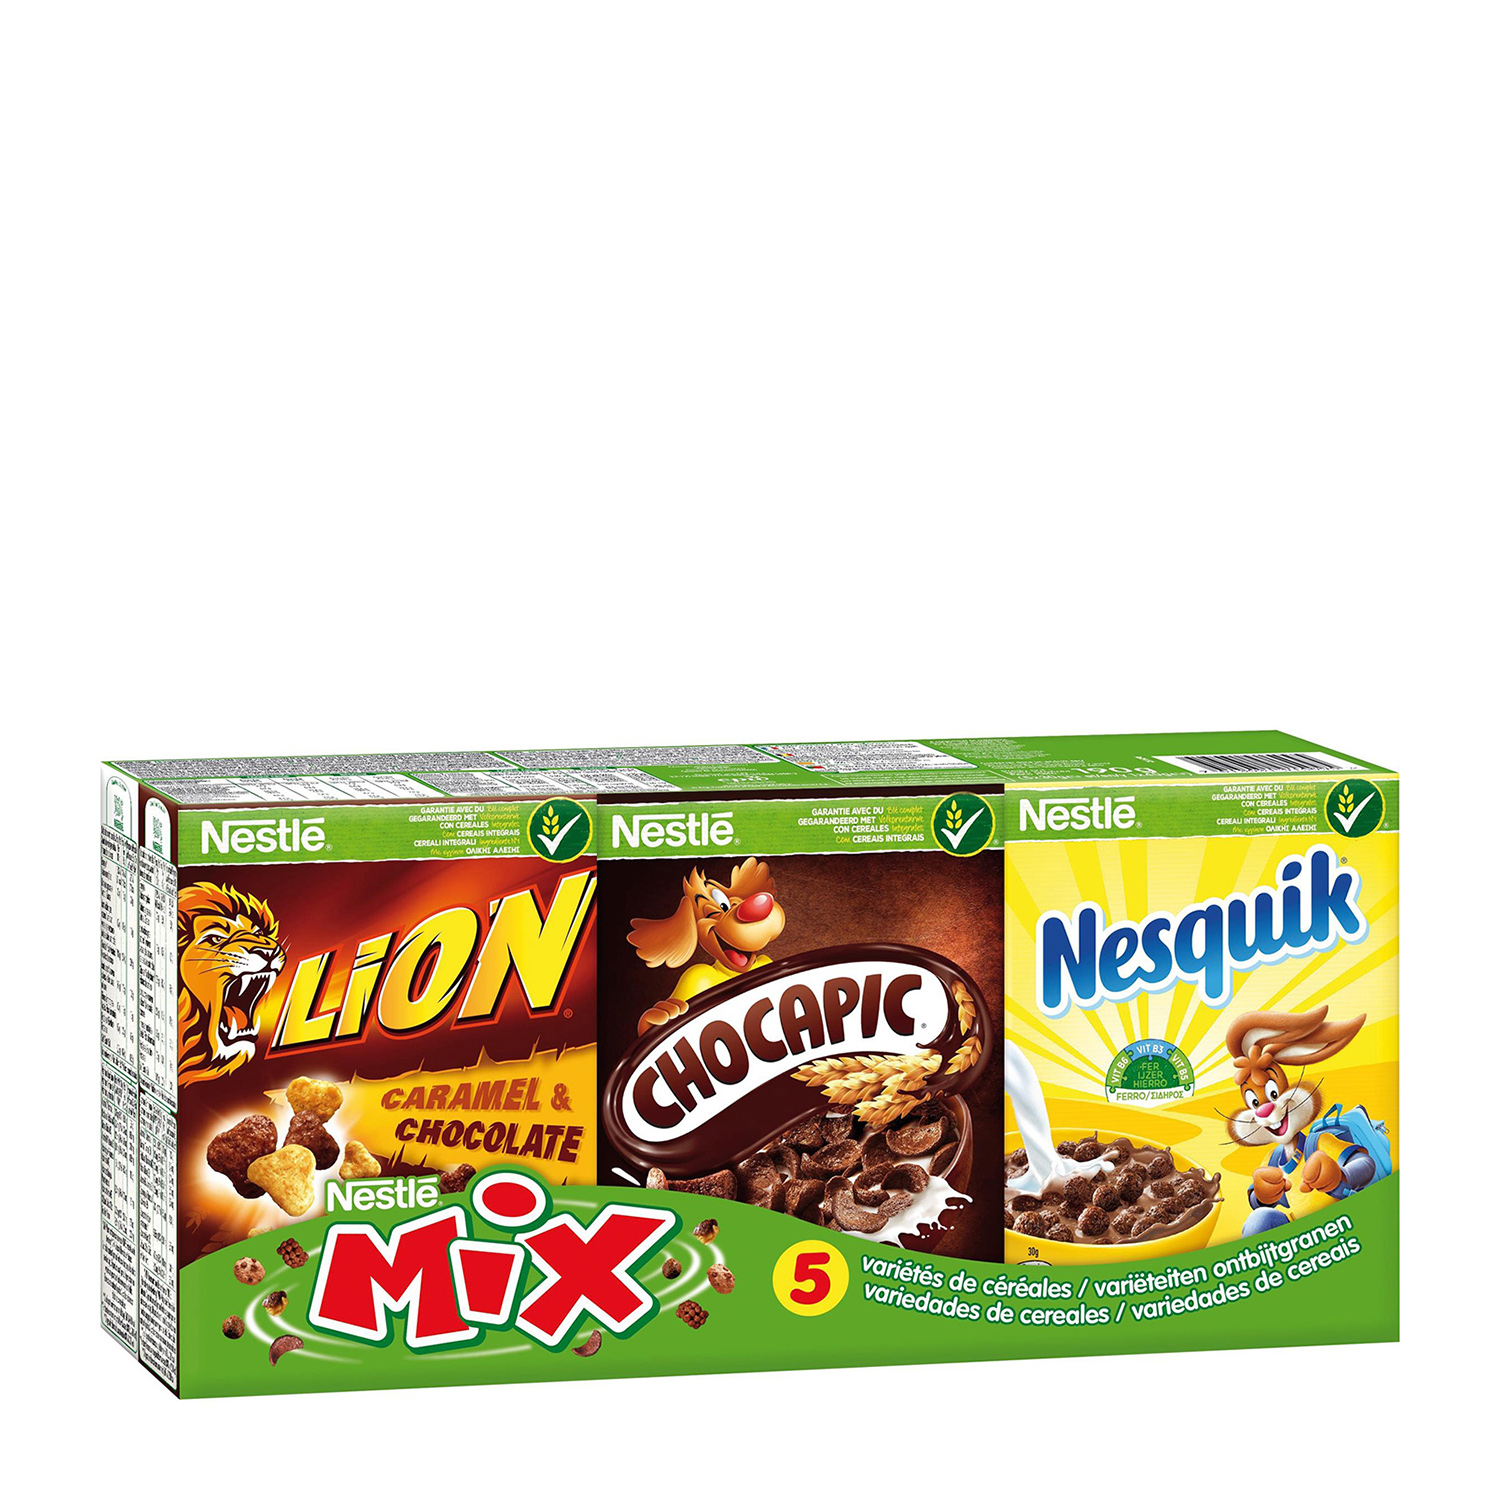 Mix cereales